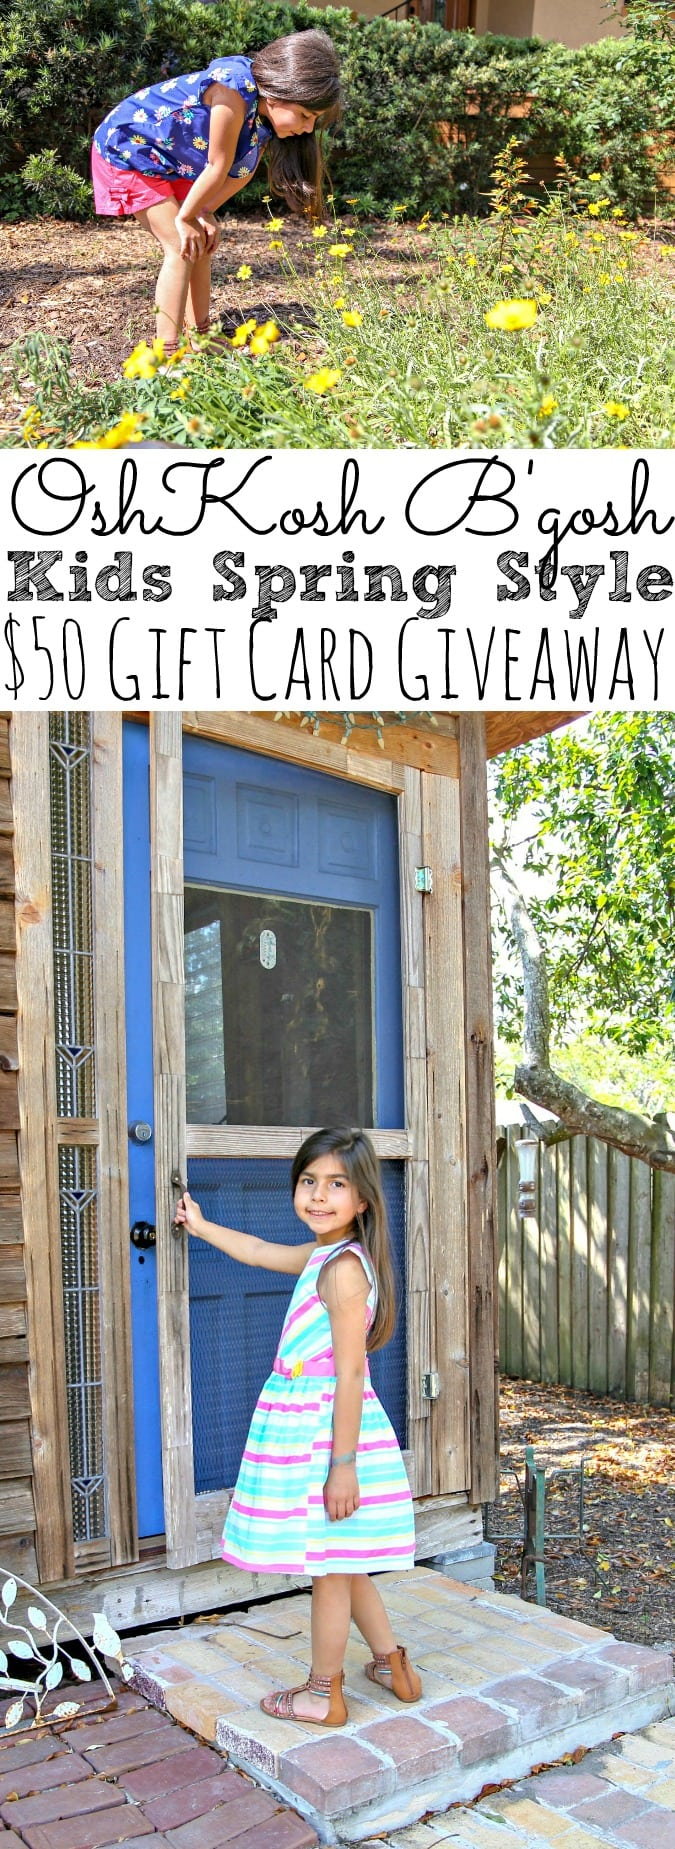 OshKosh B'gosh Kids Spring Style Their Way + $50 Gift Card Giveaway